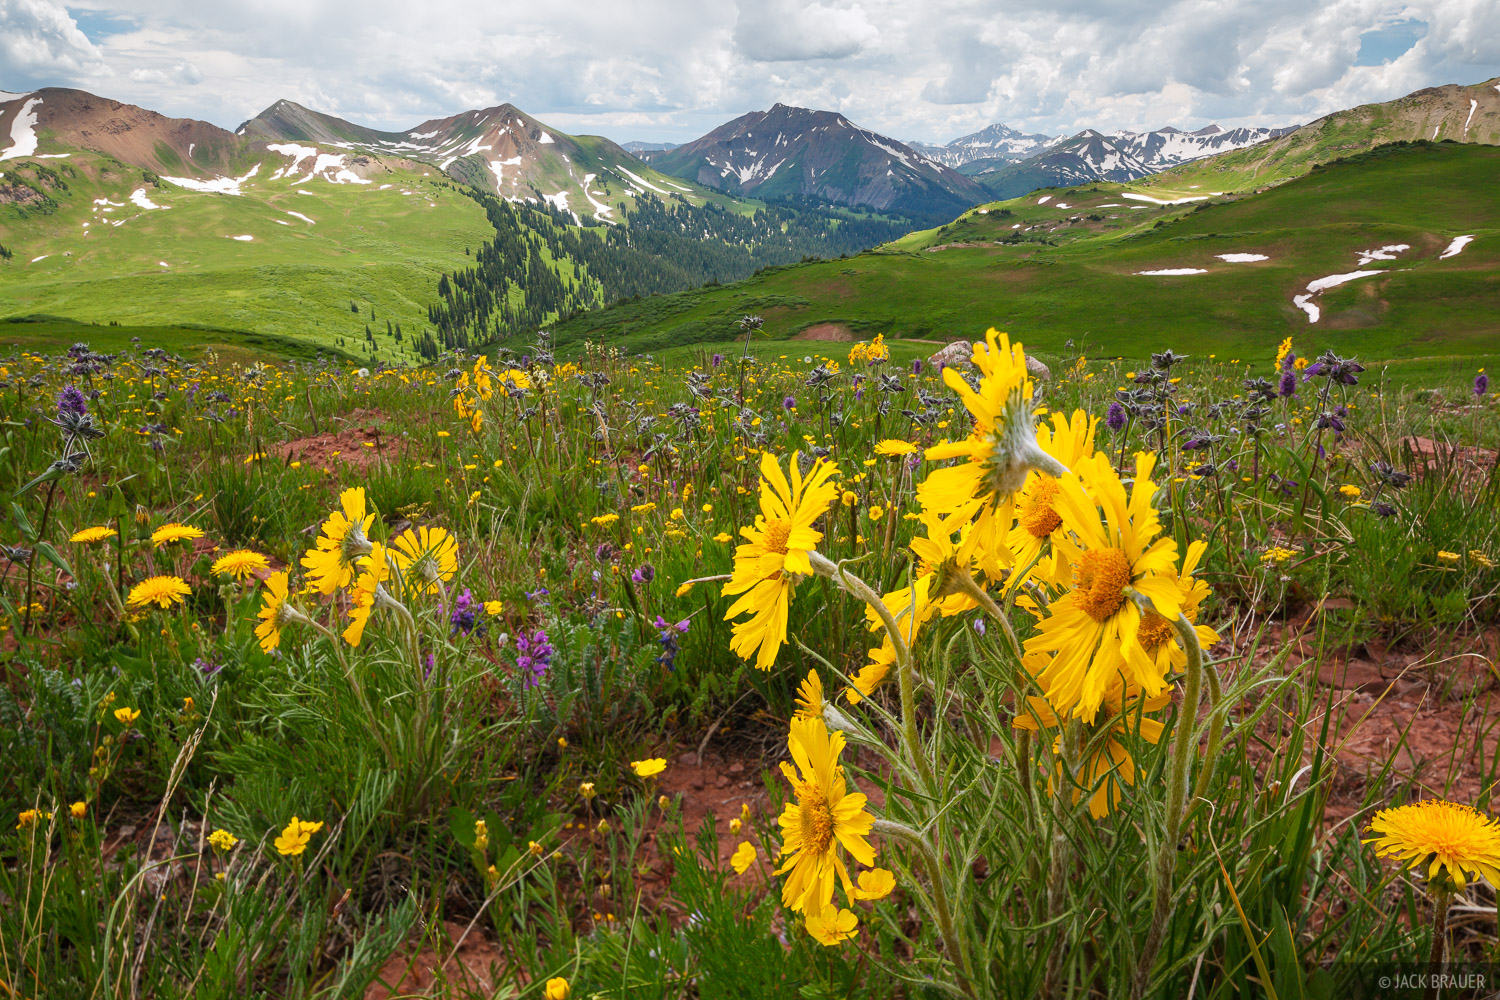 Purity Basin, sunflowers, Elk Mountains, Colorado, July, Maroon Bells-Snowmass Wilderness, photo